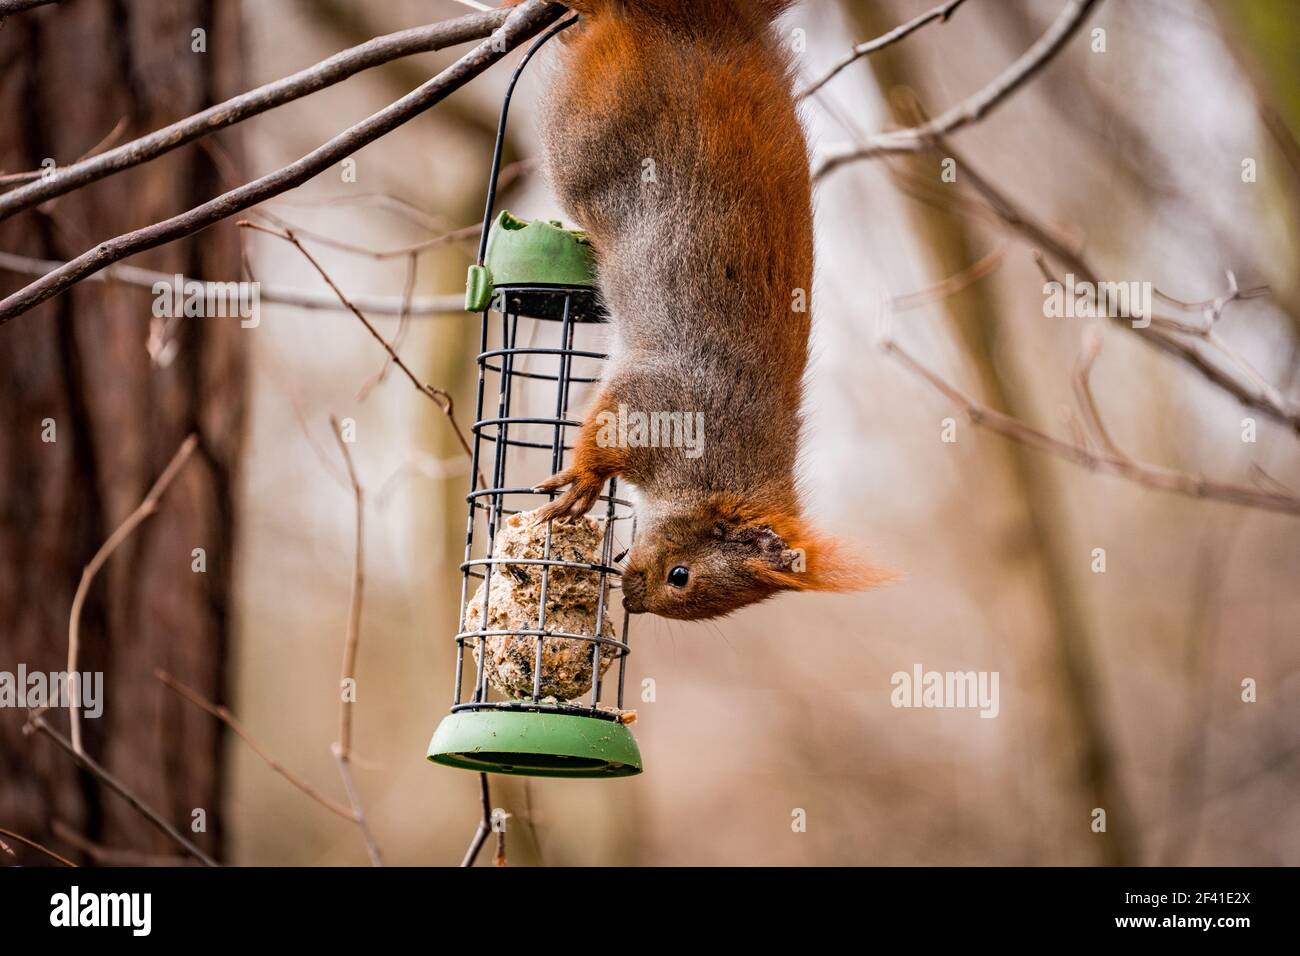 squirrel hanging upside down on a feeder Stock Photo